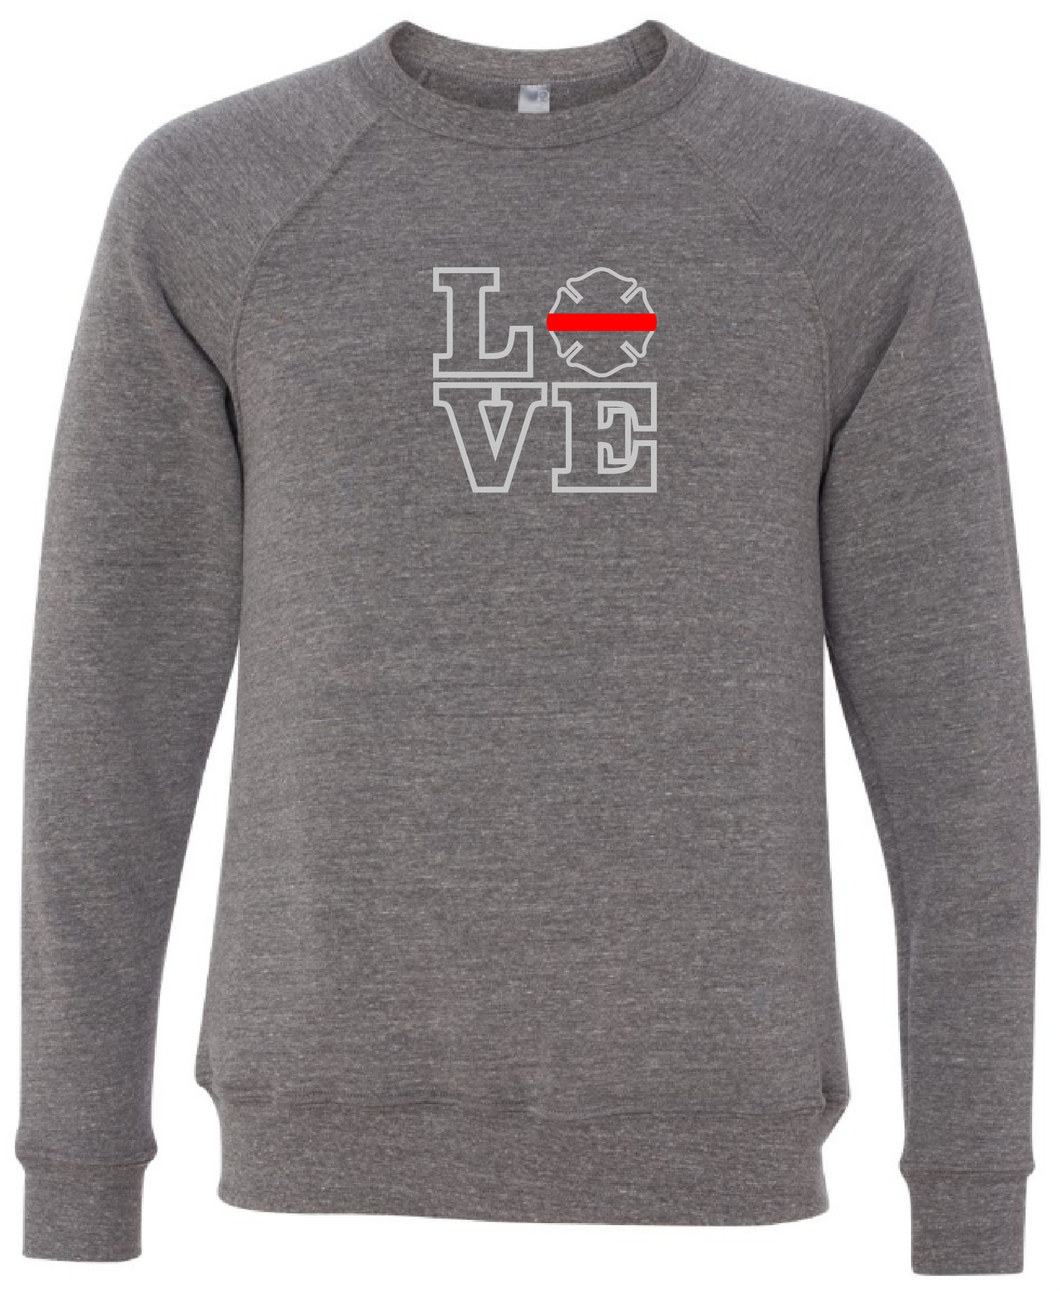 LOVE - Firefighter Badge Crewneck (with or without badge number)